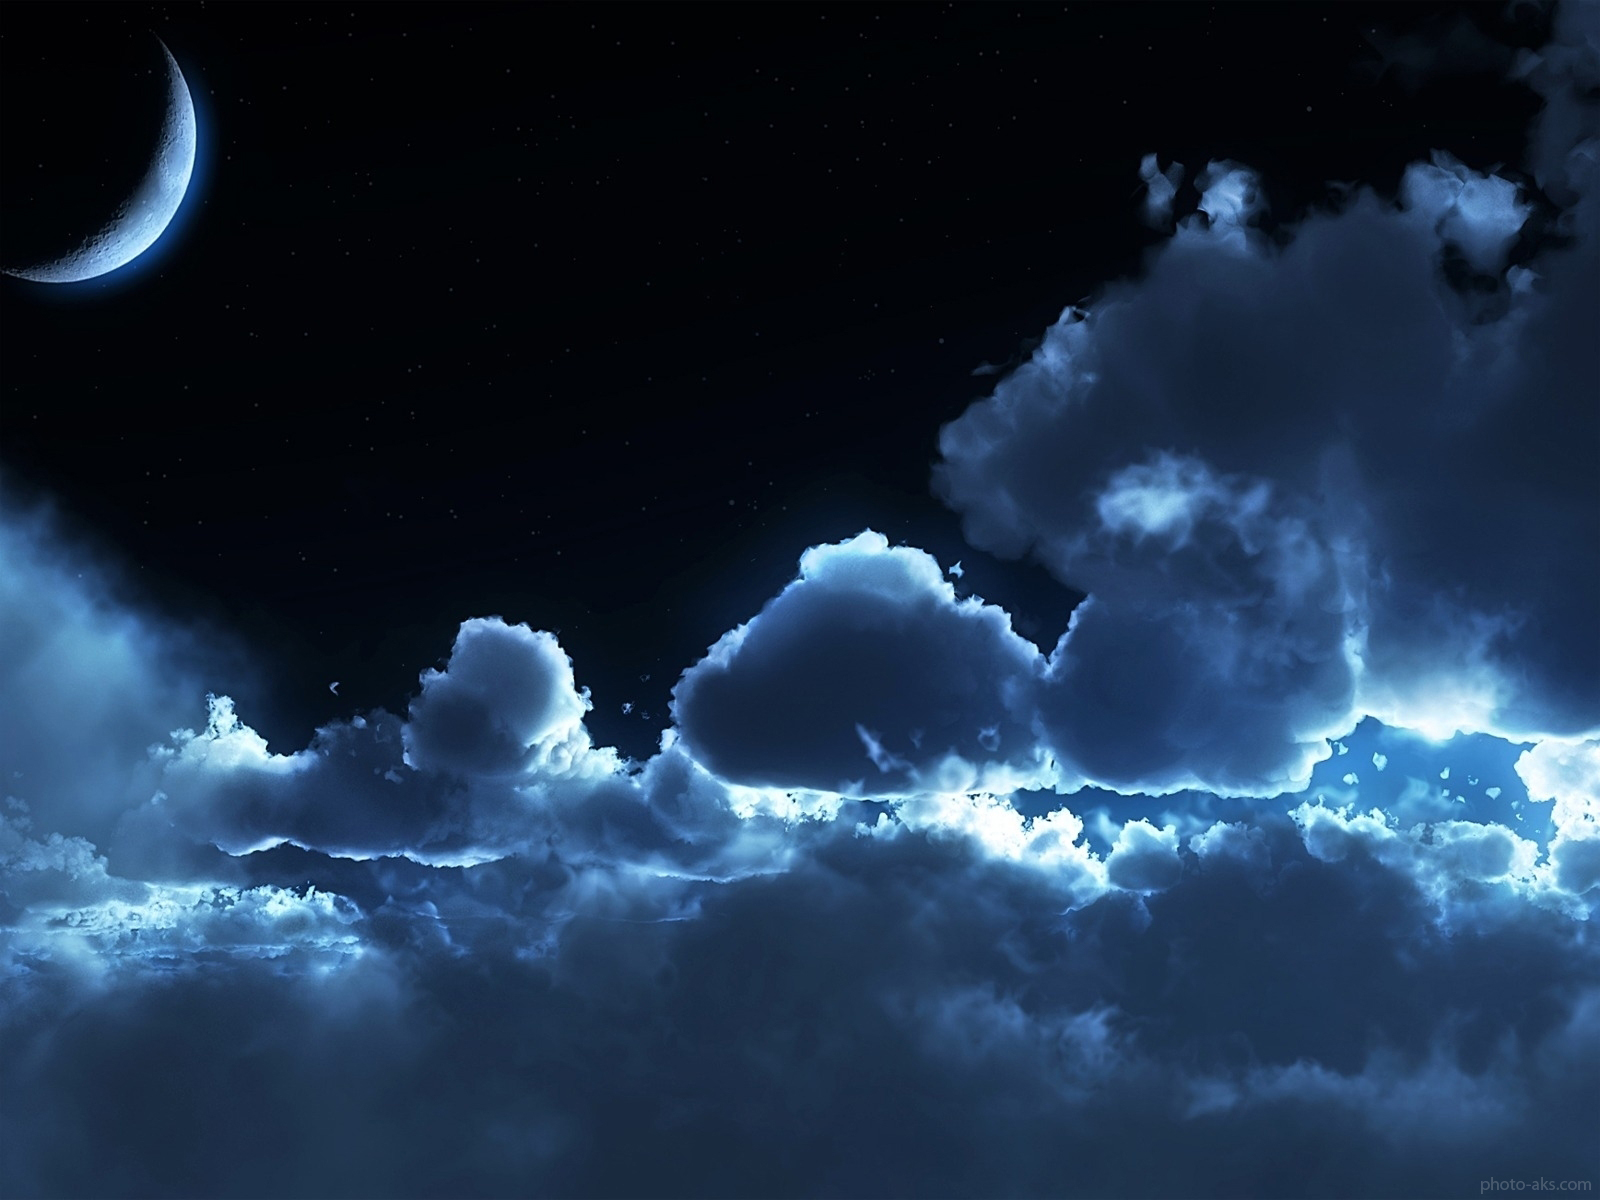 http://pic.photo-aks.com/photo/nature/cloud-sky/large/Blue_Night_Sky.jpg